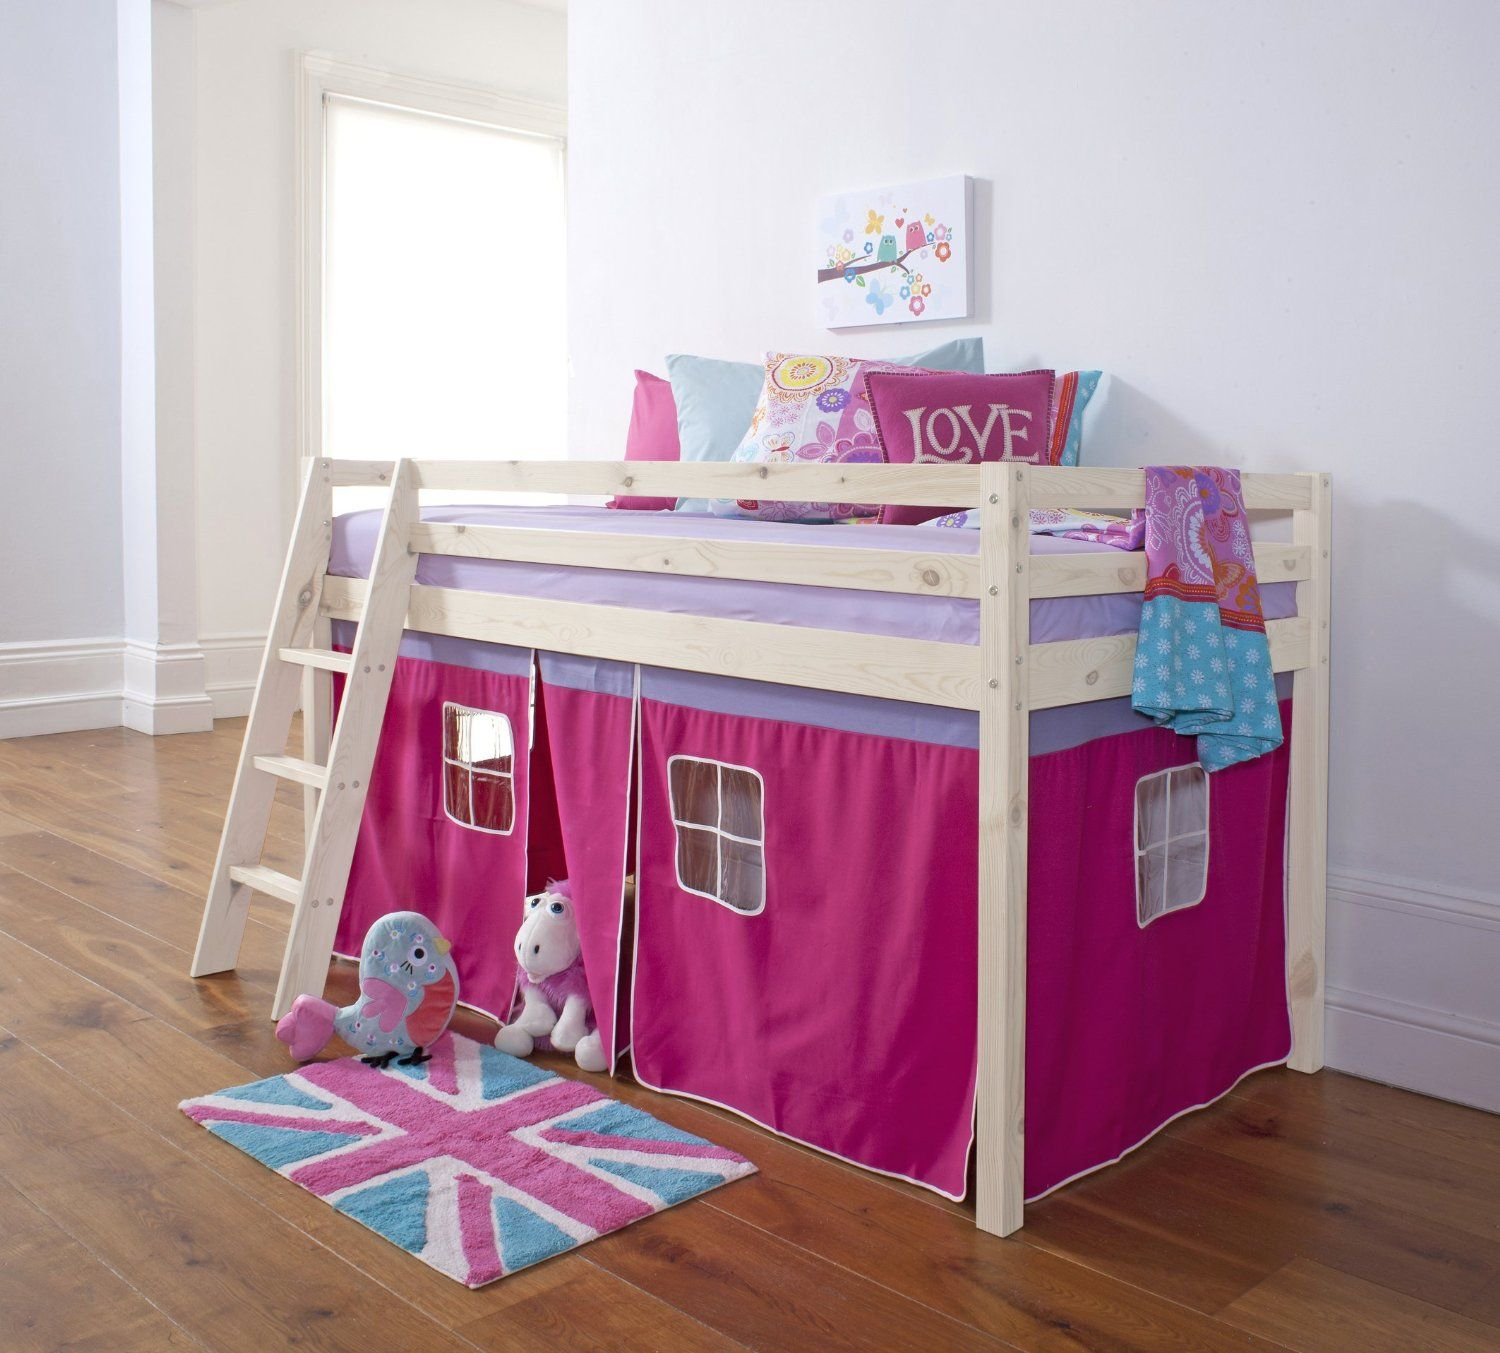 Cabin Bed Mid Sleeper Bunk with Tent Pink in Whitewash 5758WW PINK